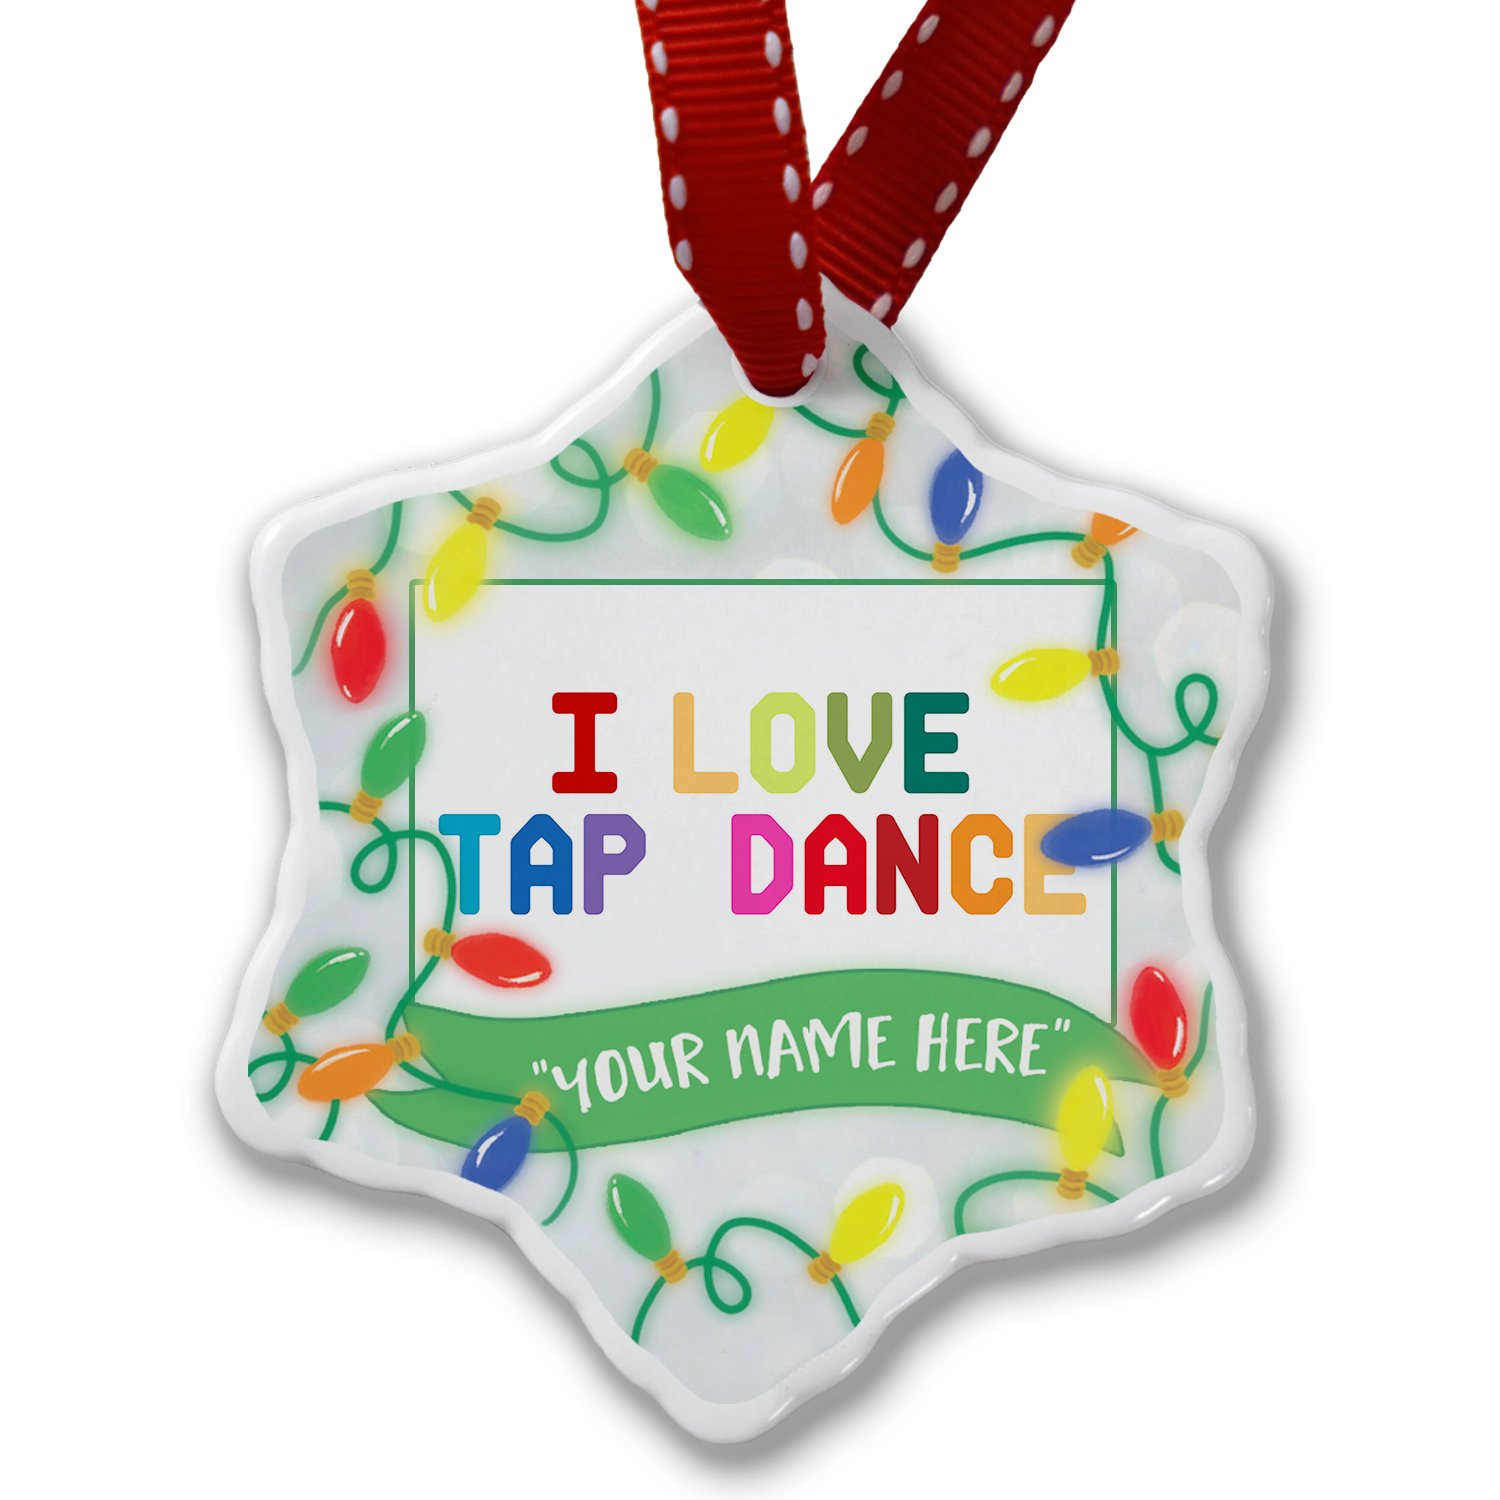 Personalized Name Christmas Ornament, I Love Tap Dance,Colorful NEONBLOND